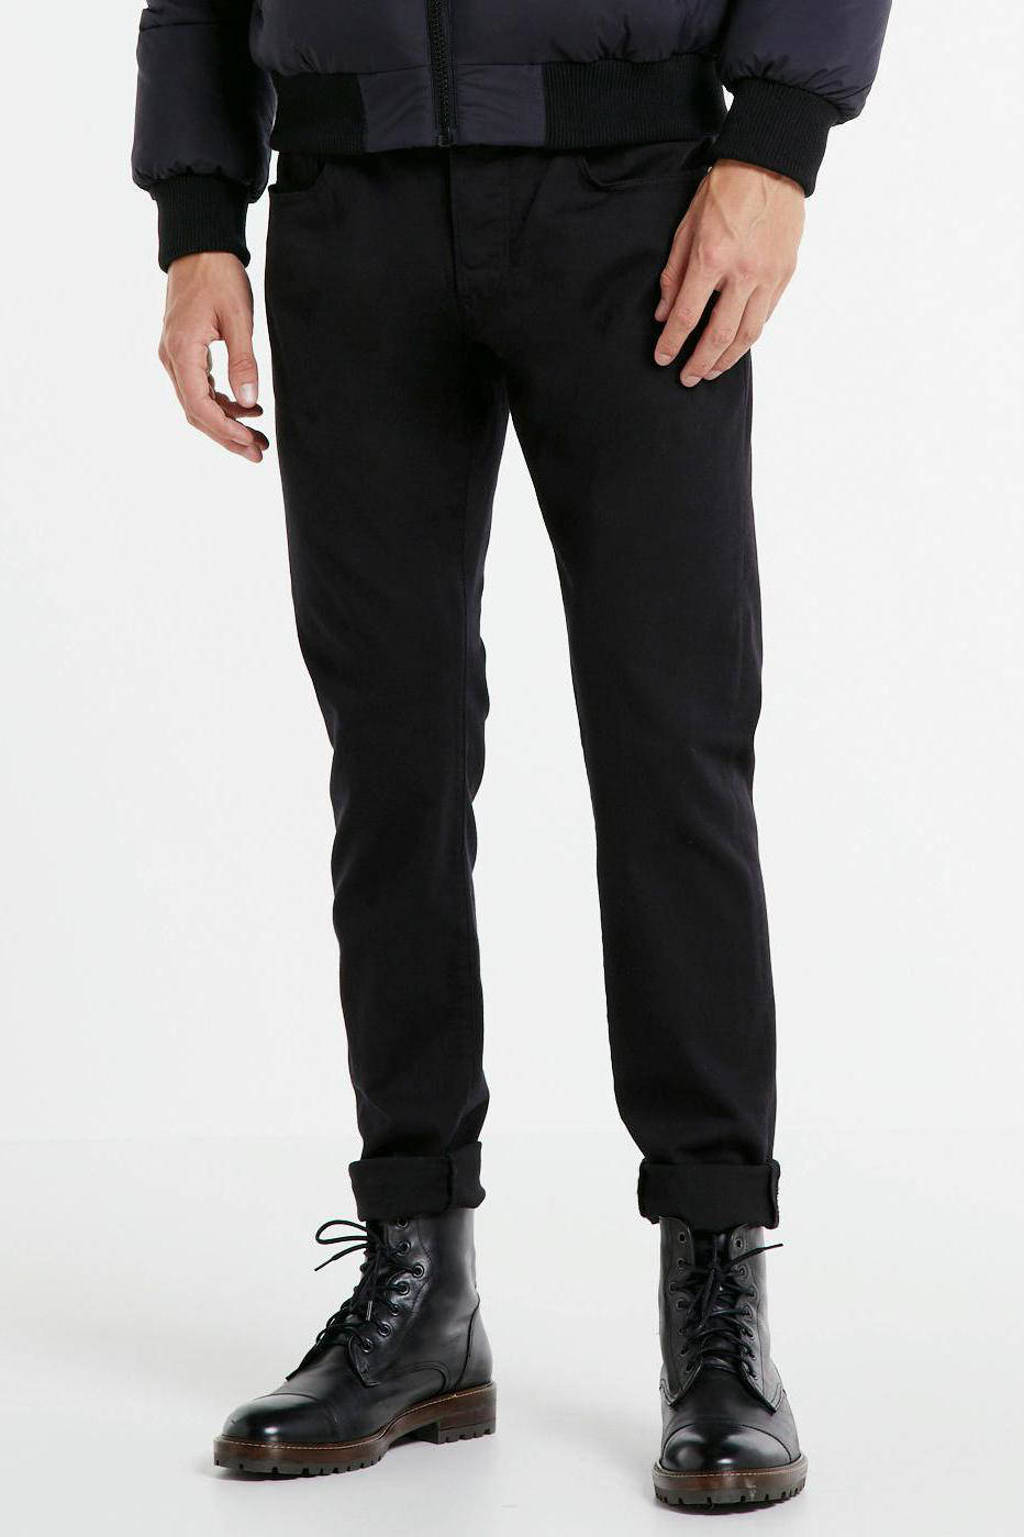 G-Star RAW 3301 slim fit jeans 8970/ita black